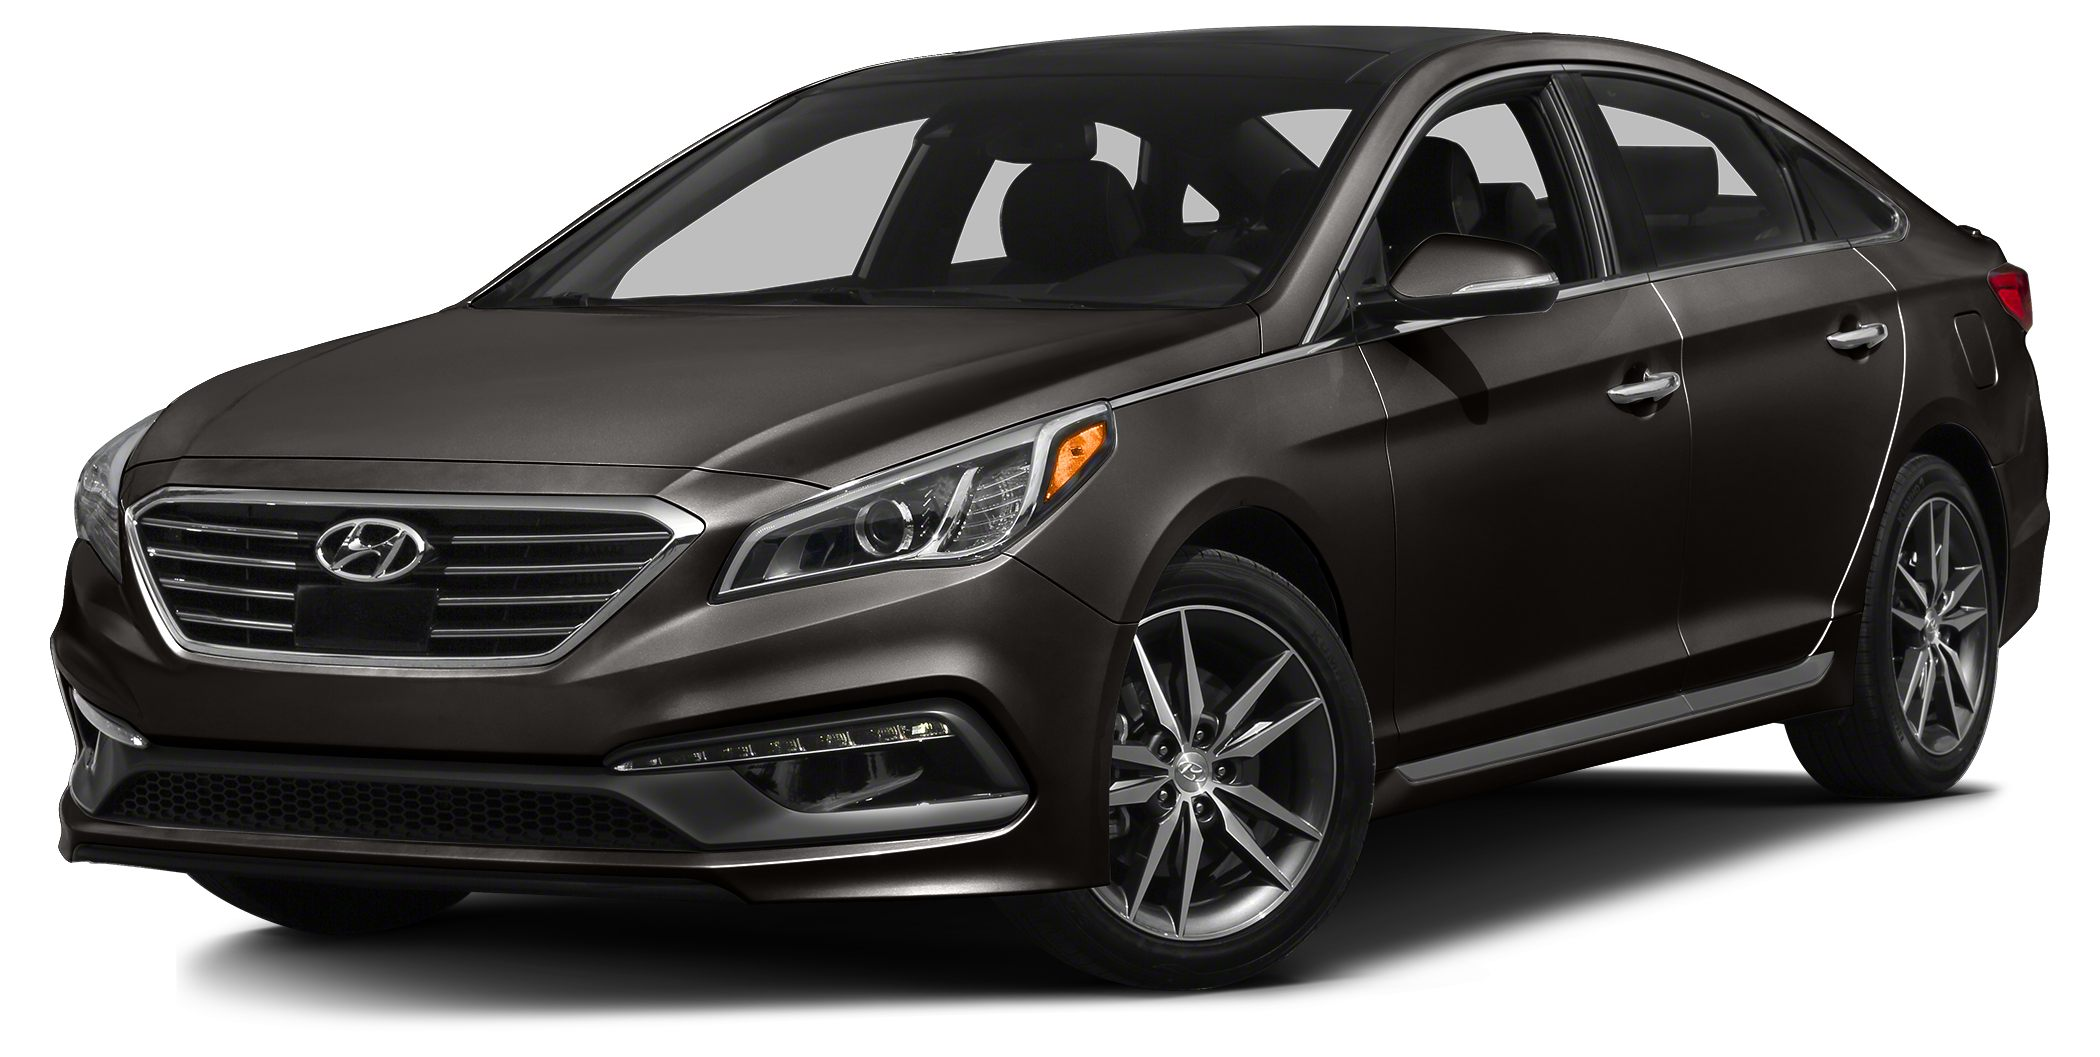 2015 Hyundai Sonata Sport Must finance with HMFC to collect all and full discounts Price applies